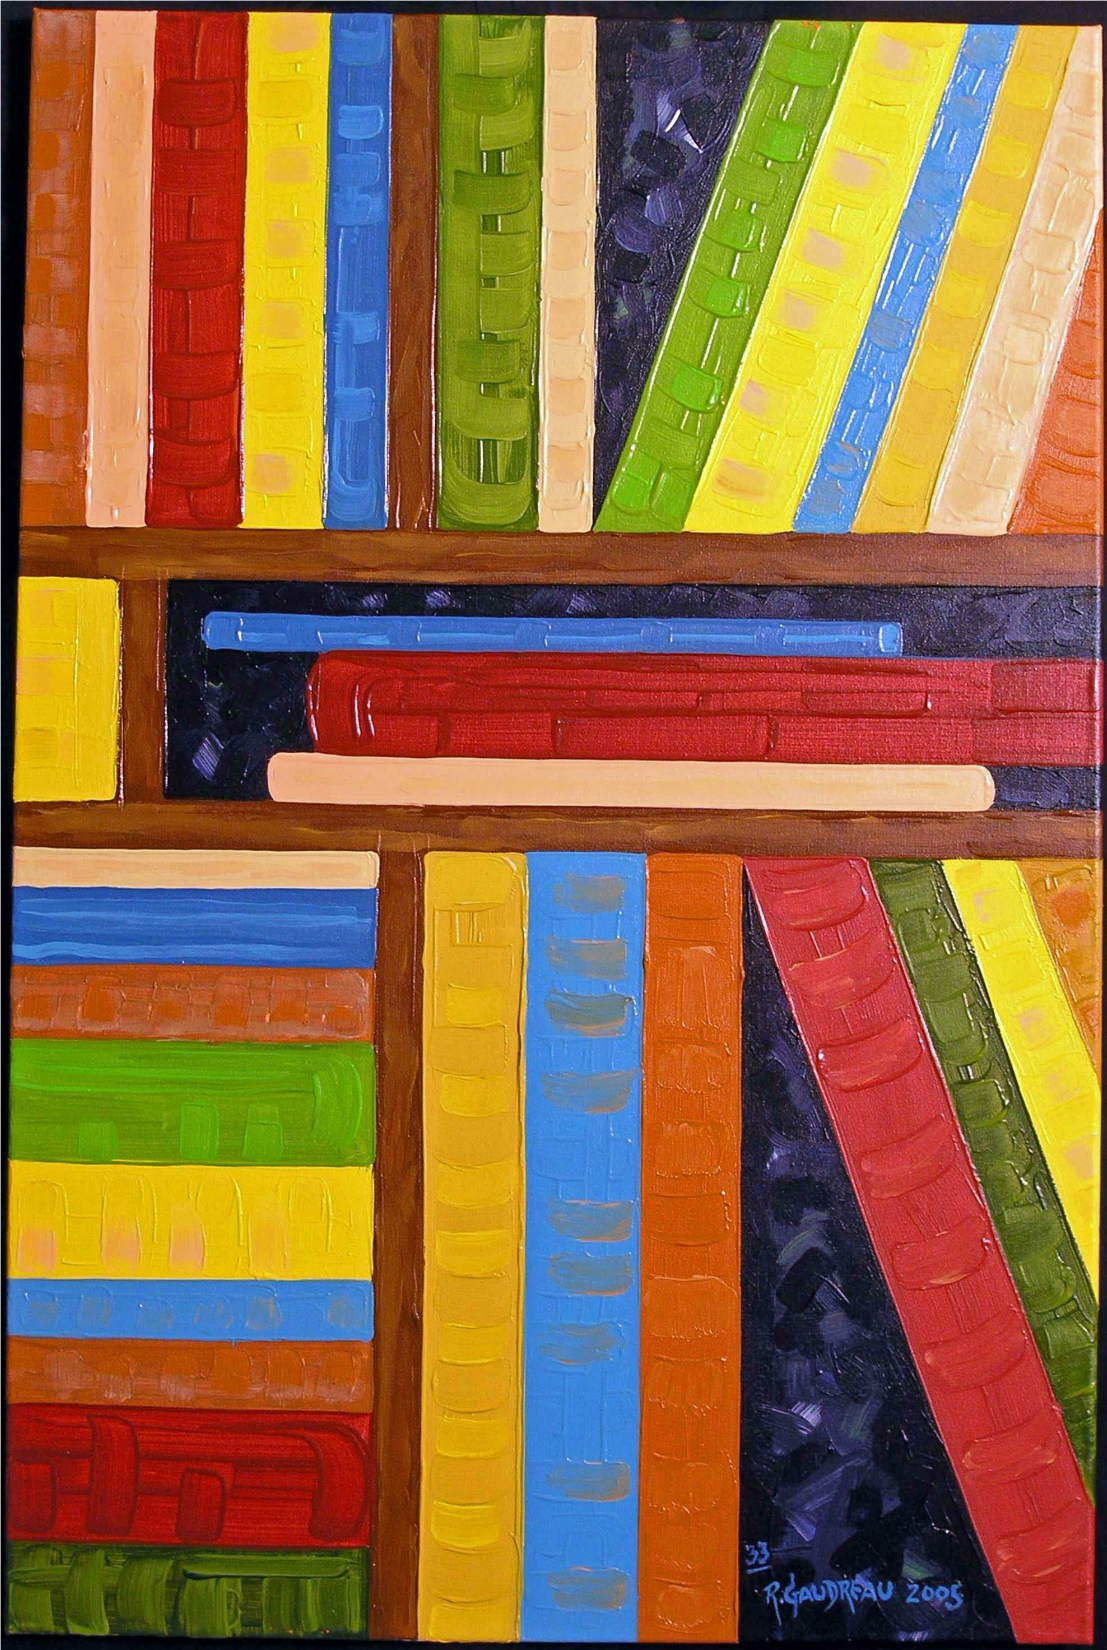 33  Books 2005      (SOLD) oil on canvas 36 x 24 inches